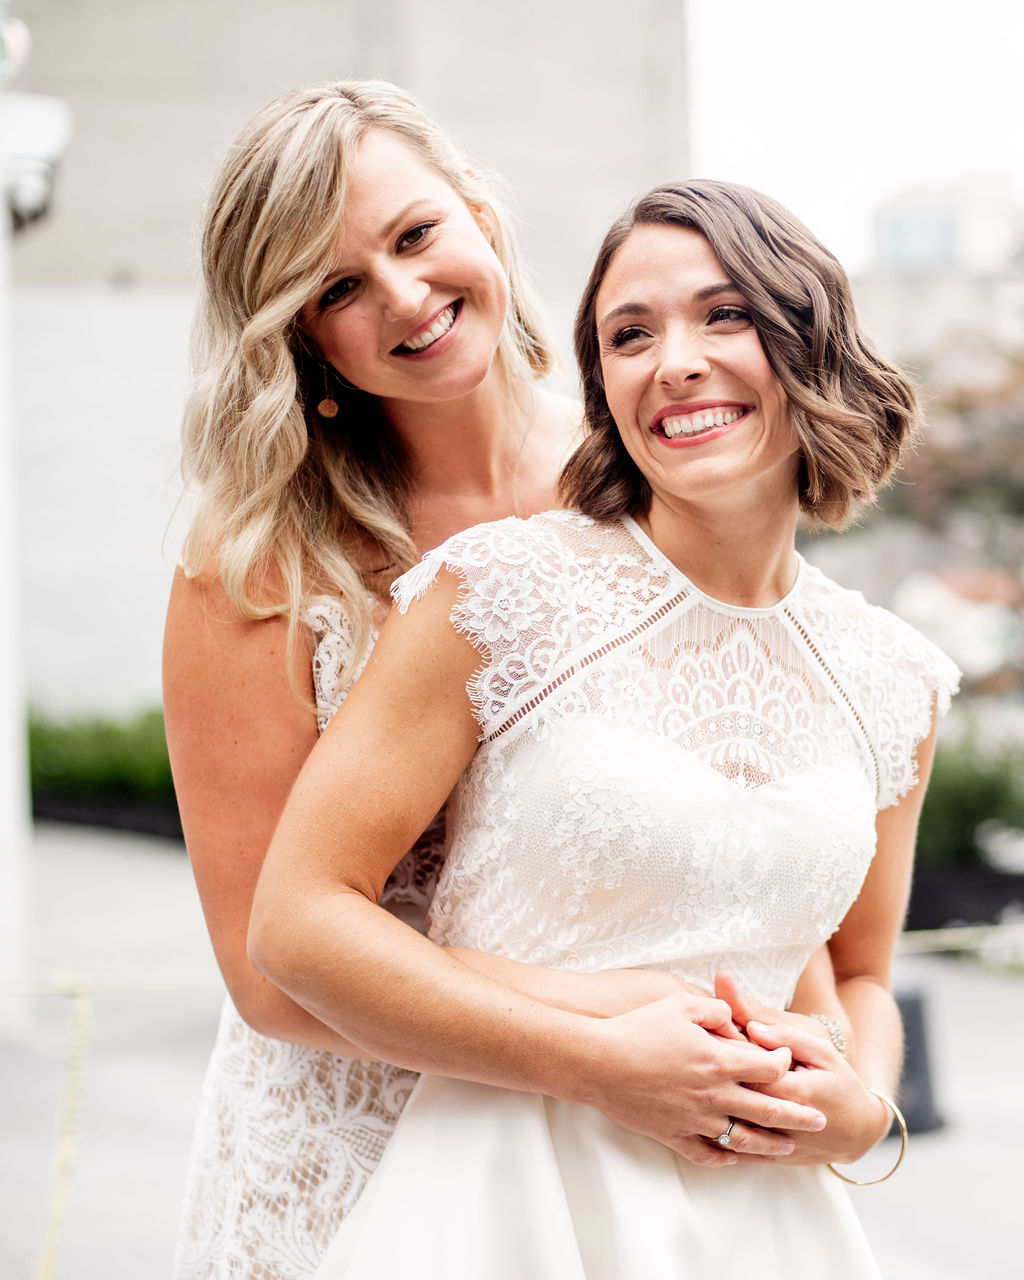 Two brides, one with a dark bob length hair and one with long blonde hair, with modern, edgy textured waves, posing in DUMBO, Brooklyn, on wedding day